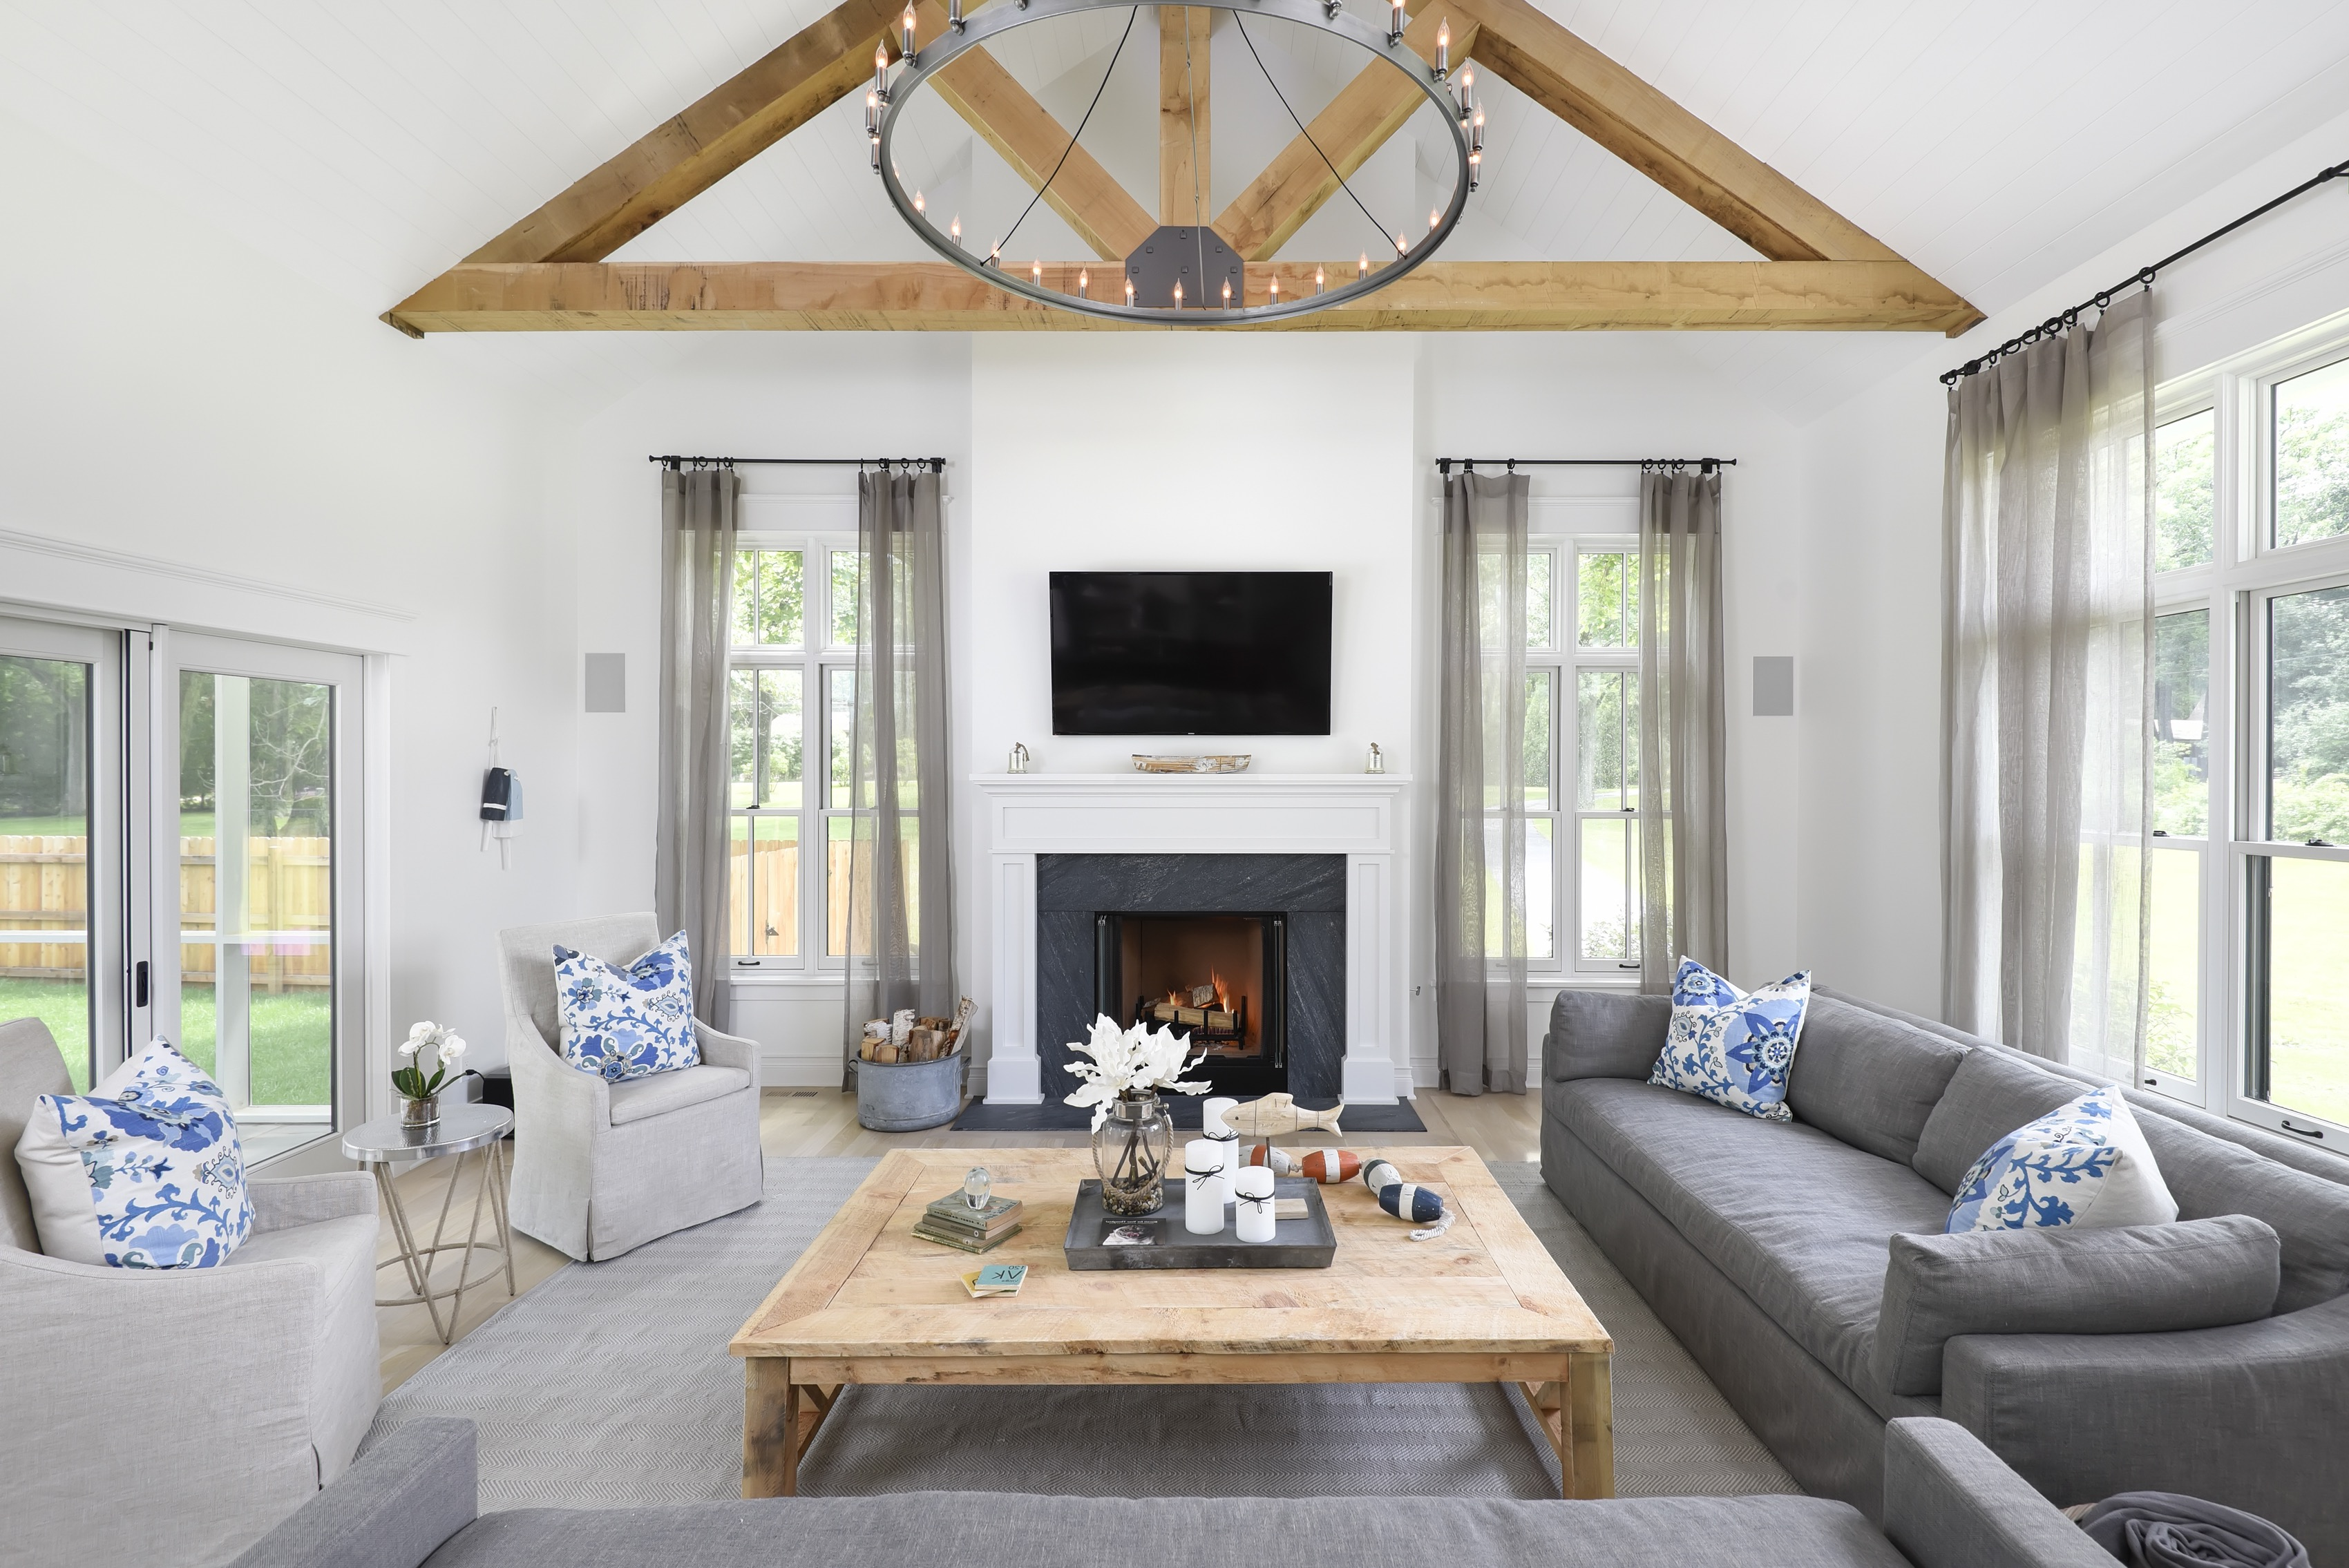 Country Living Room Decor For Warm And Nostalgic Nuance | Custom ...